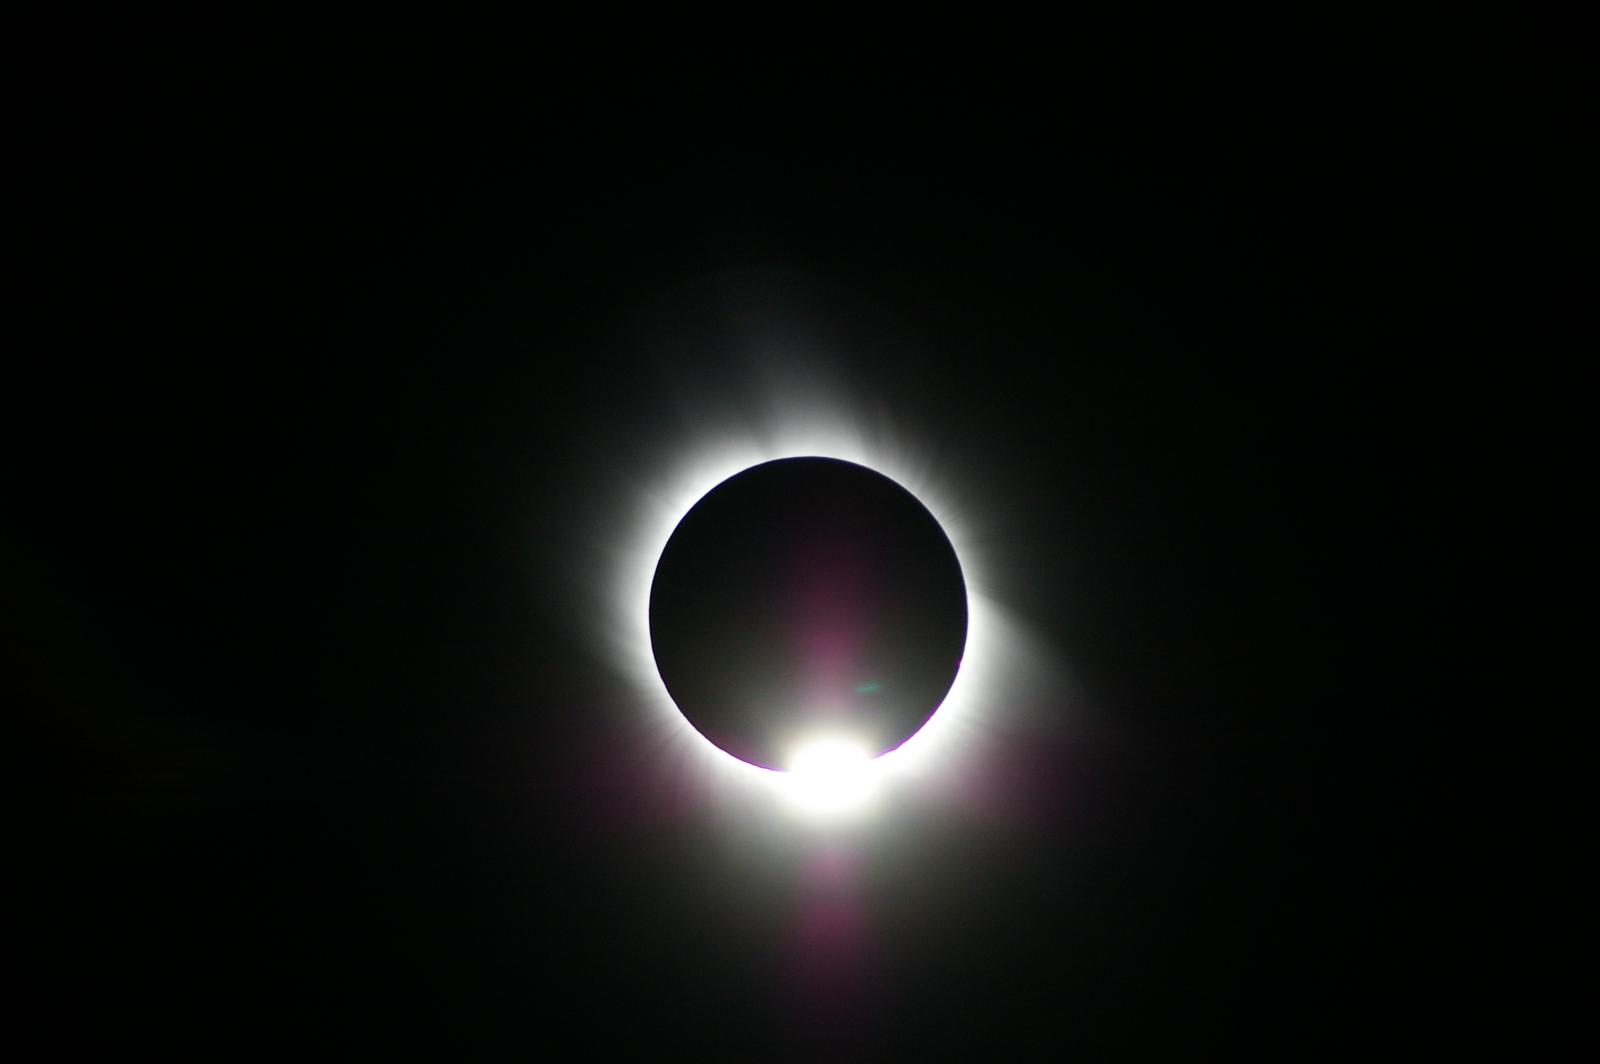 Cloudy or not? Total Eclipse USA and a partial glimpse for the UK